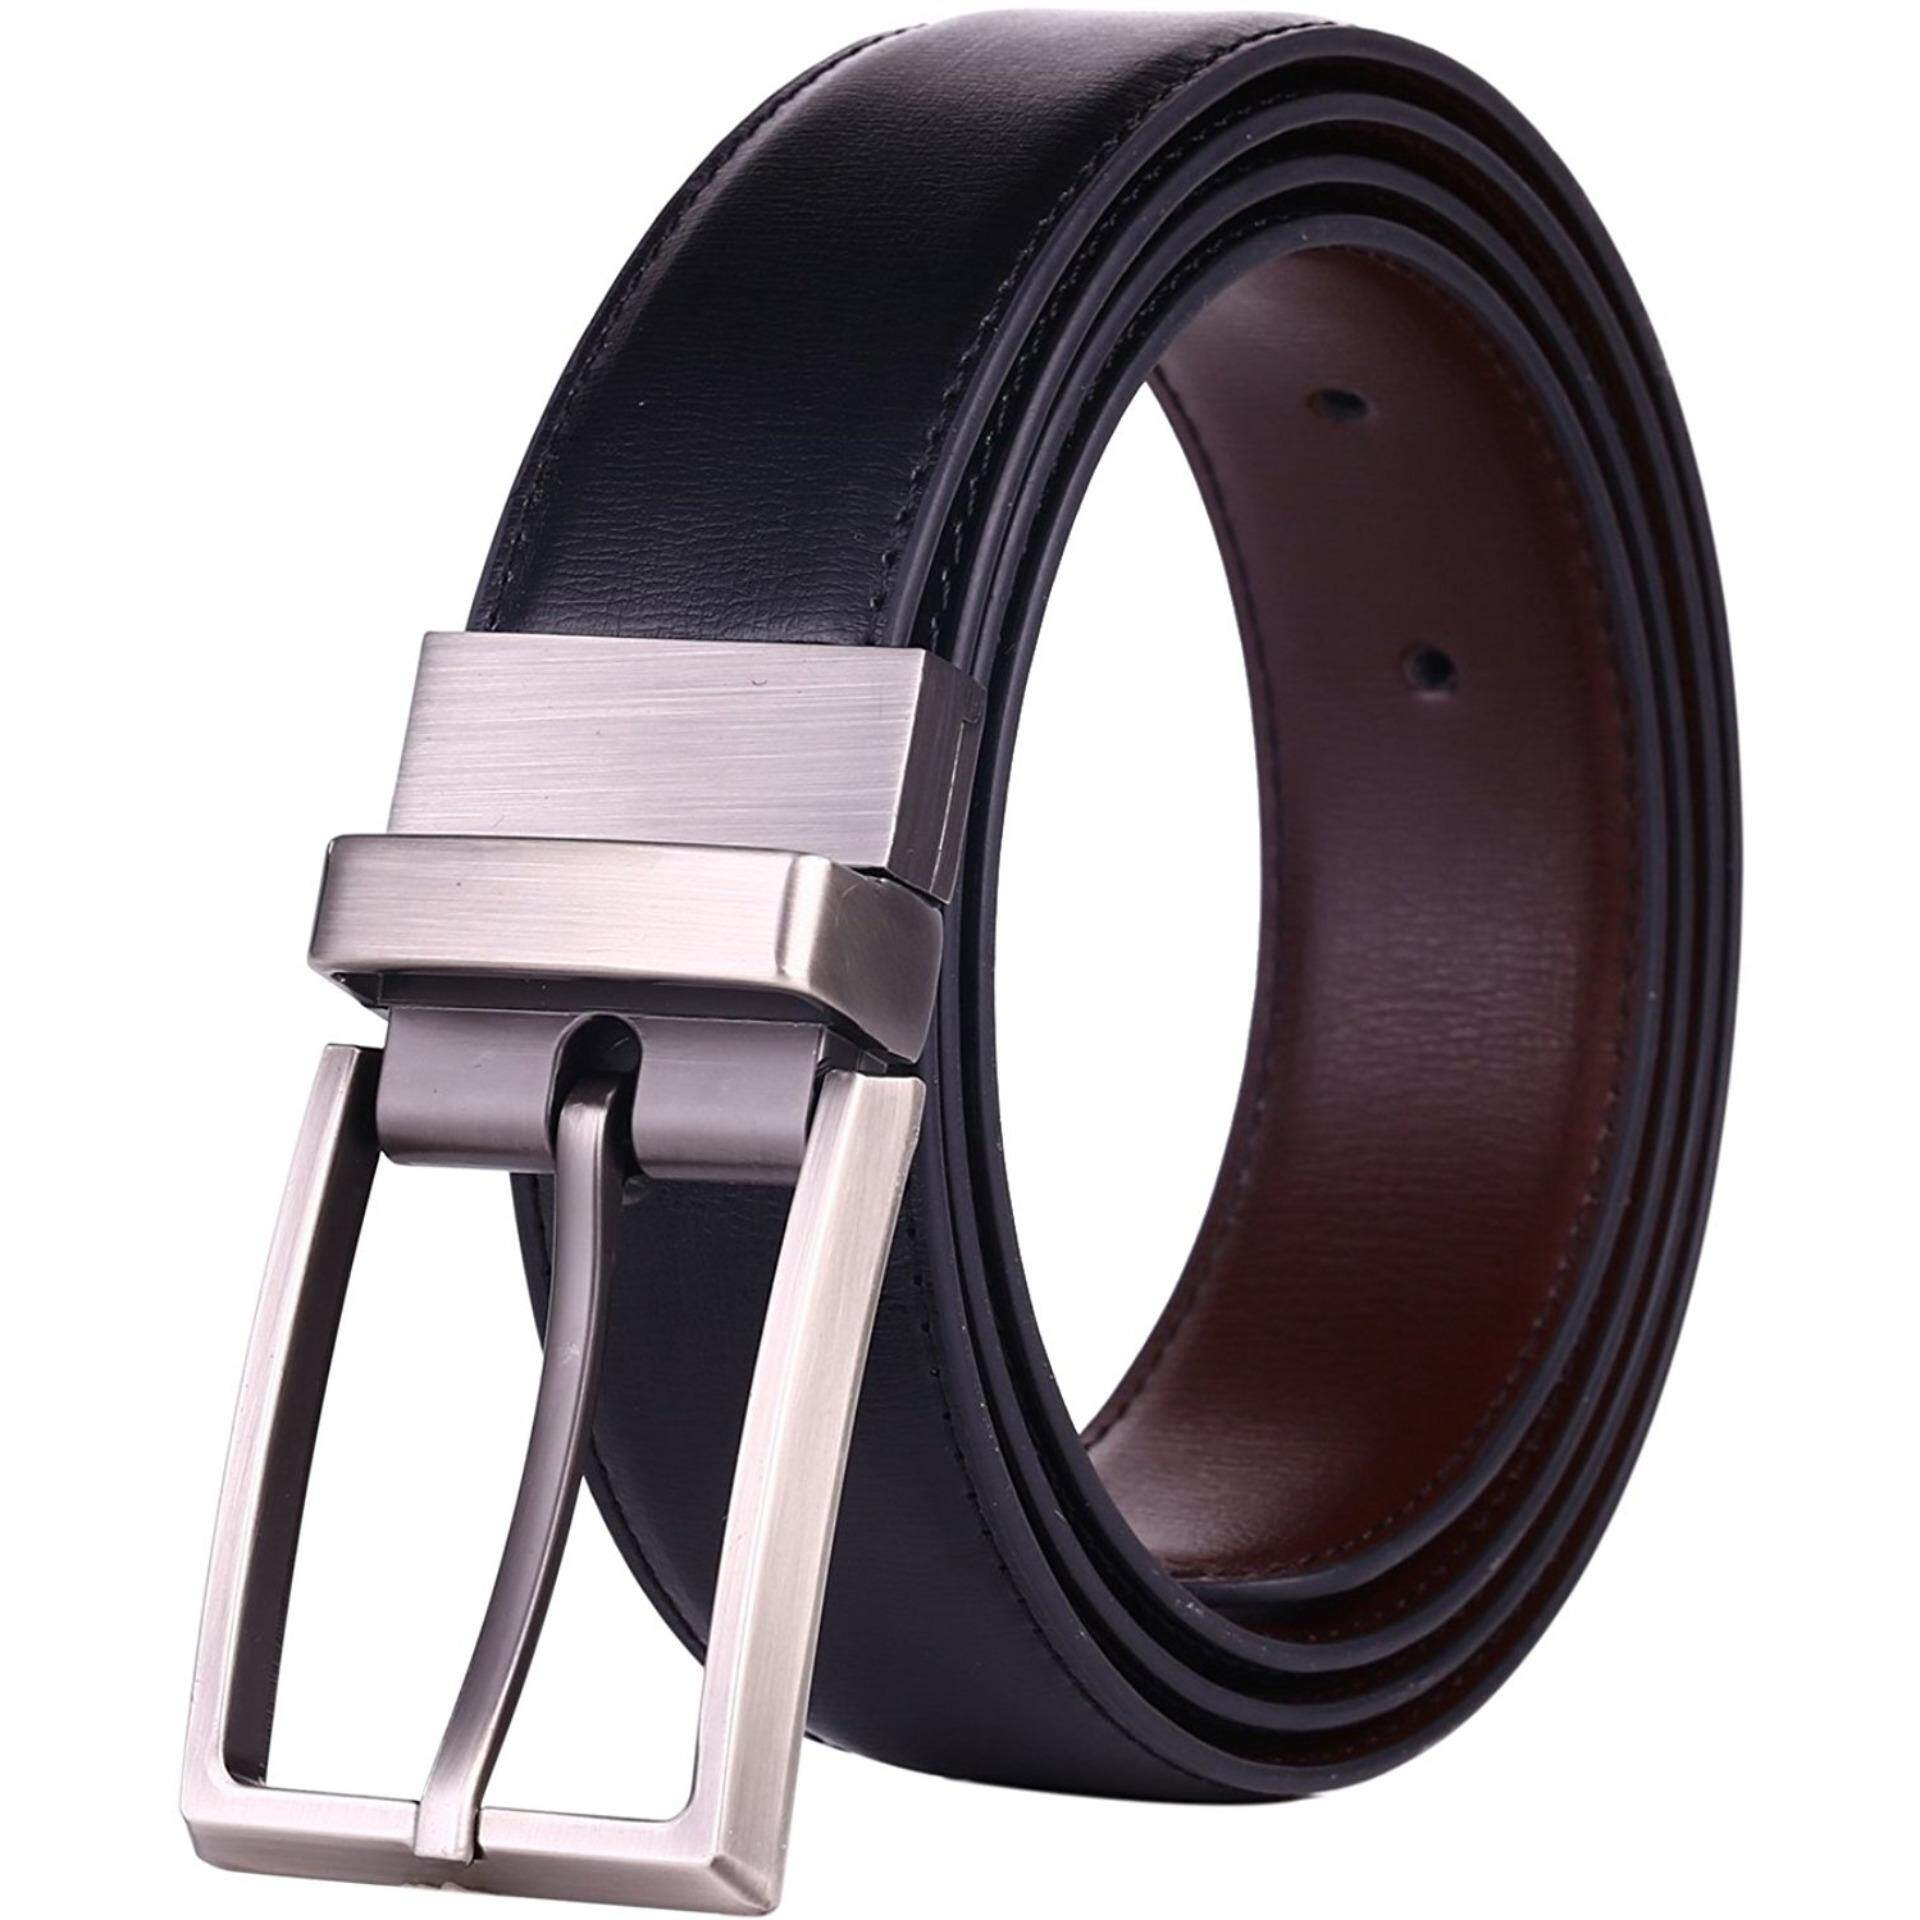 Where Can You Buy 【125Cm】Q Shop Men S Leather Belt Premium Quality Reversible Rotated Buckle Belt With Gift Box Black Brown Intl